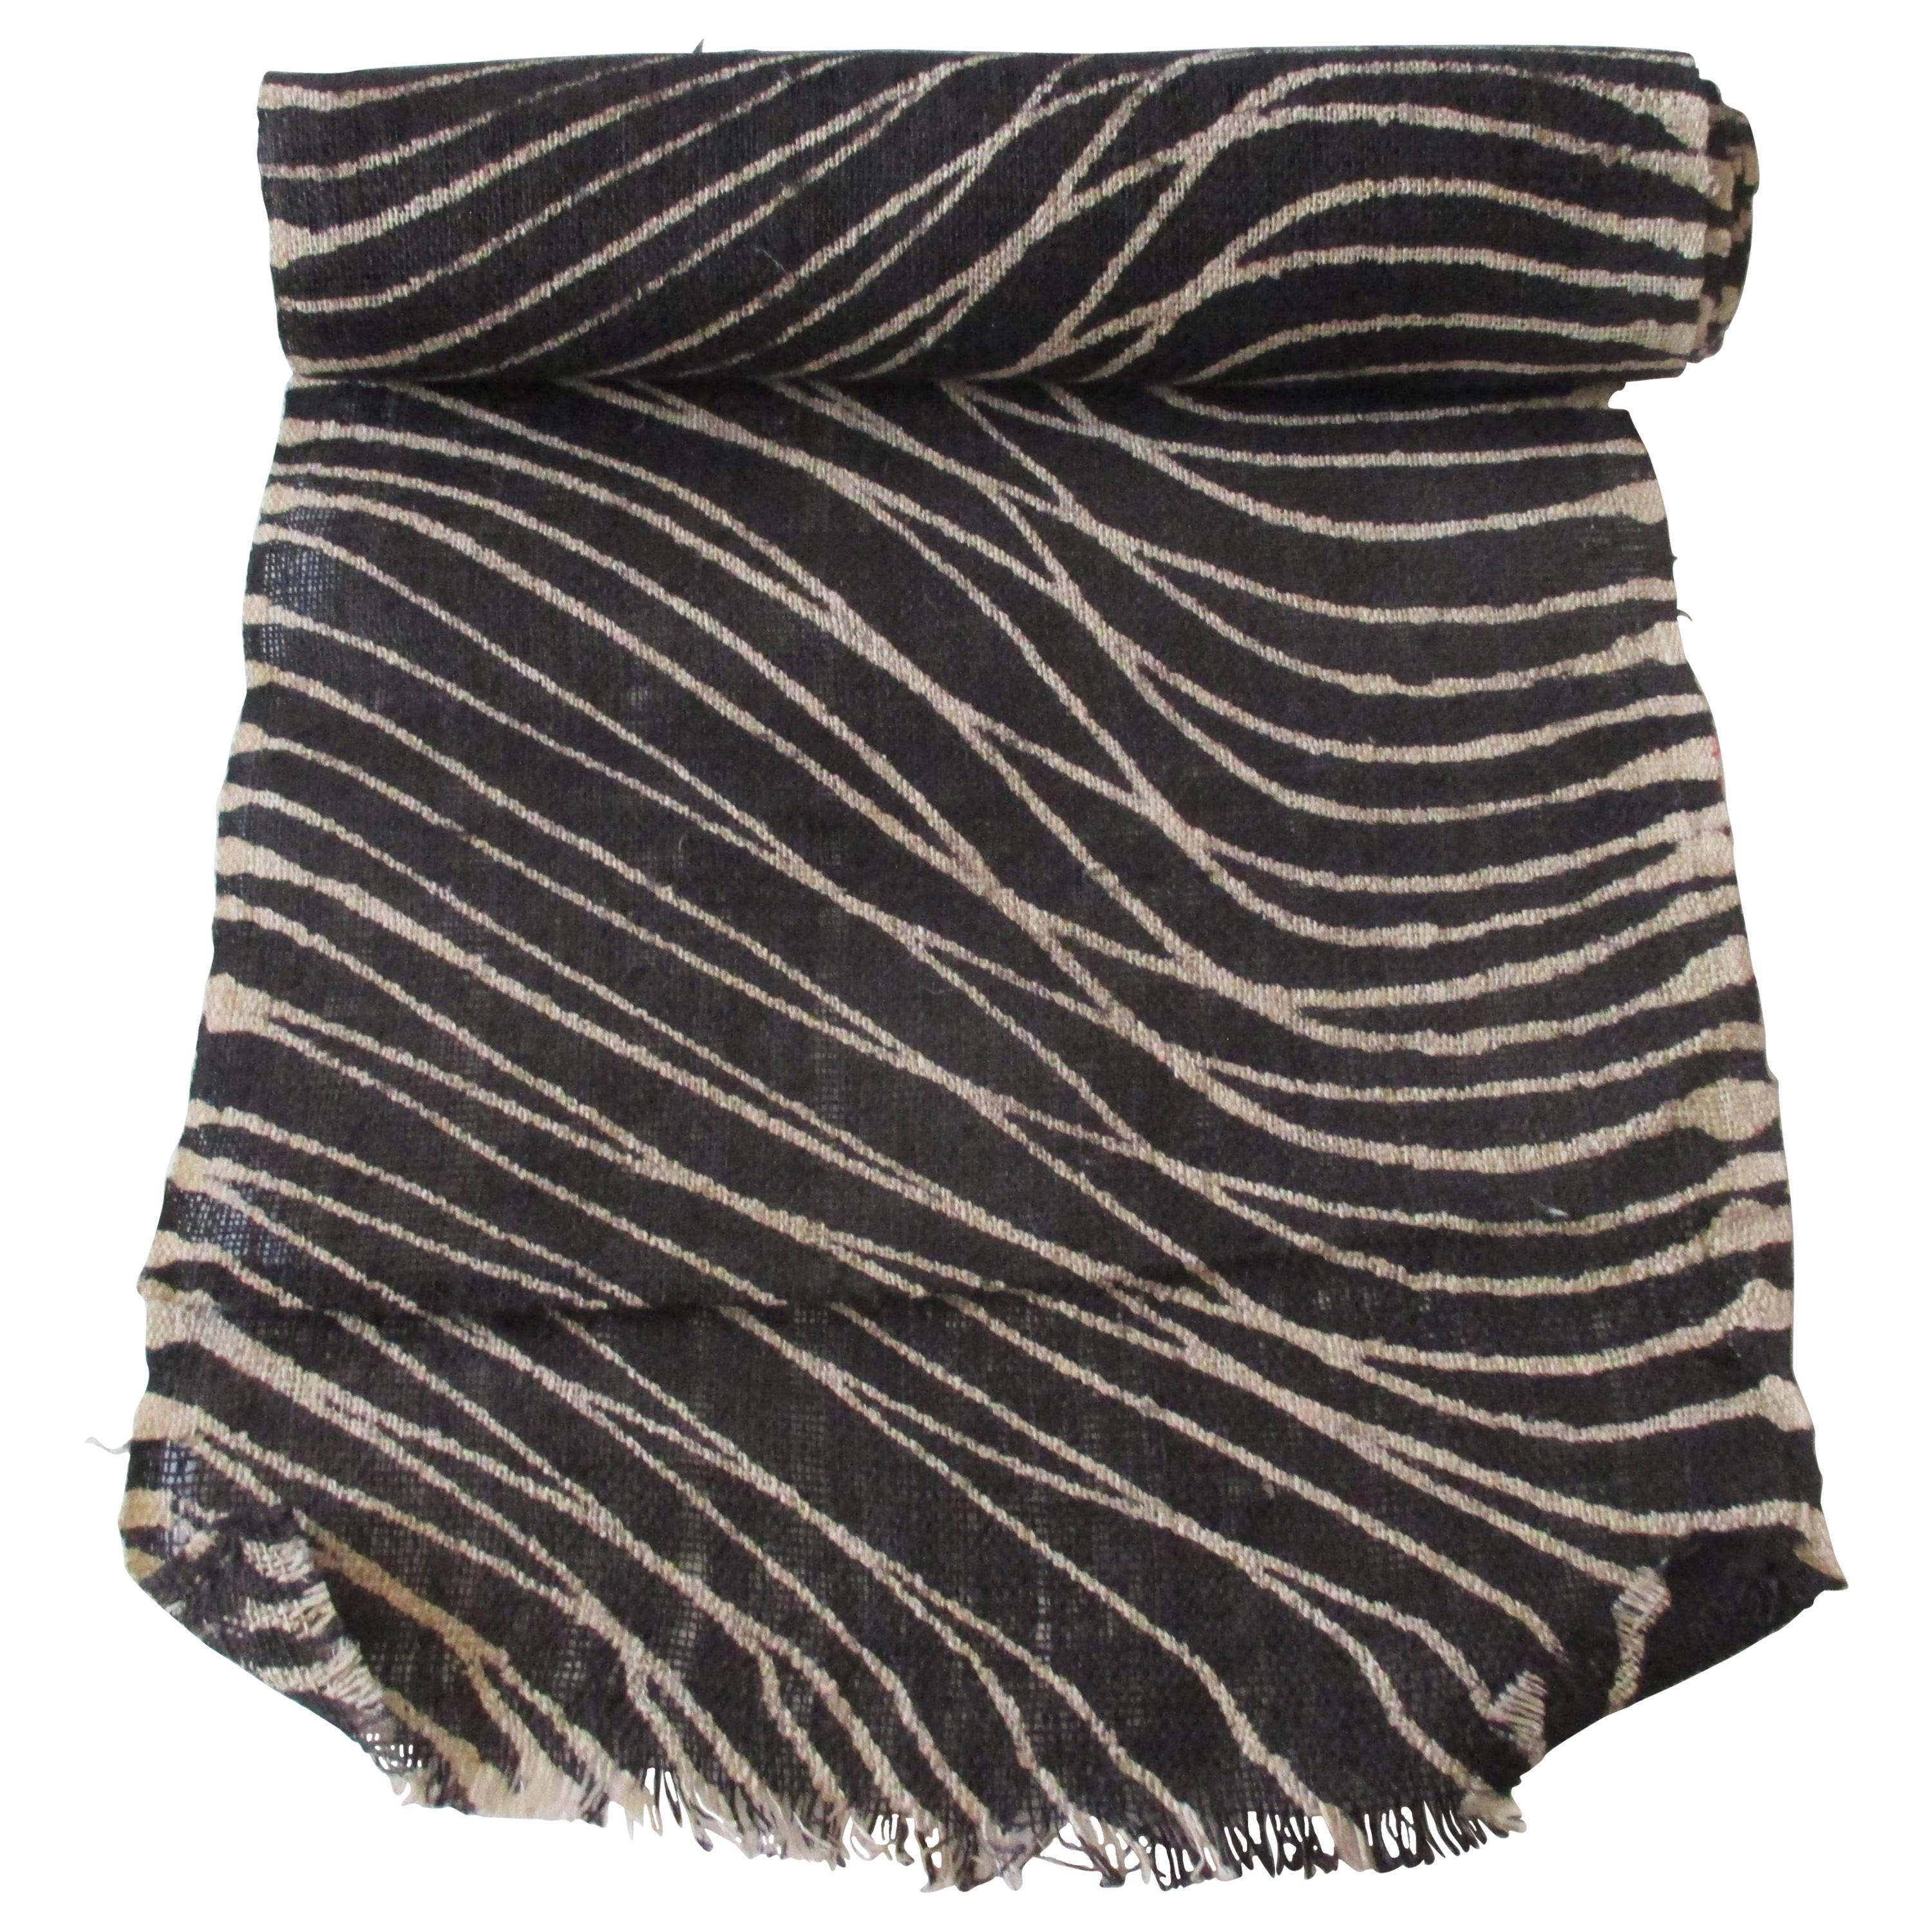 Black and Tan Undulating Pattern Textile Roll